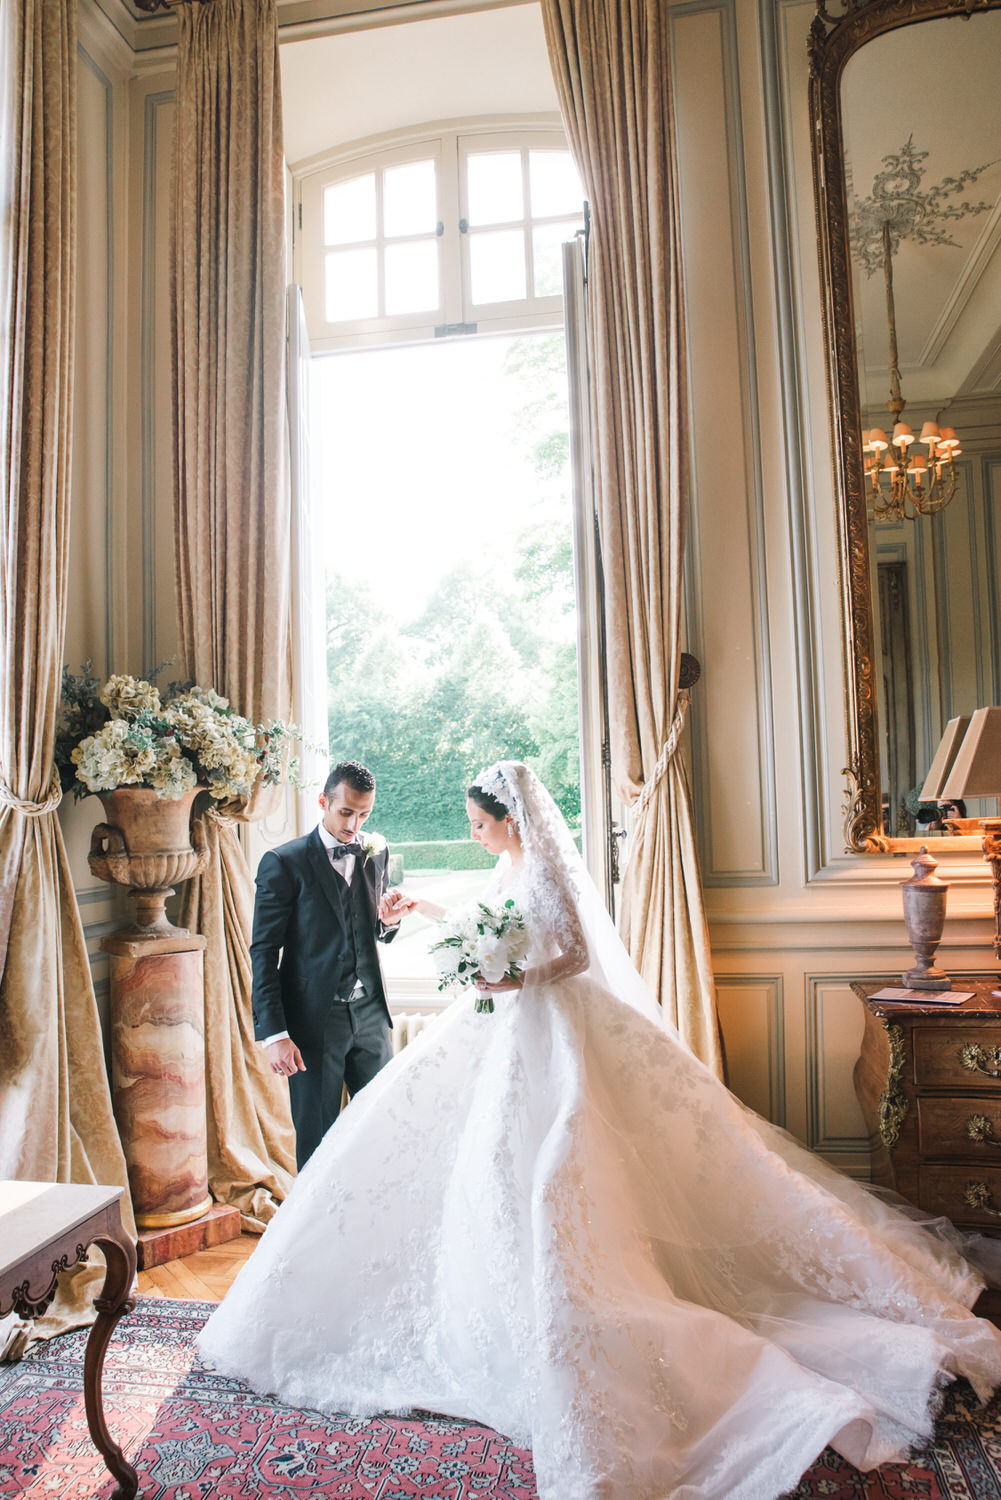 The French fairytale wedding Ben Yew captured